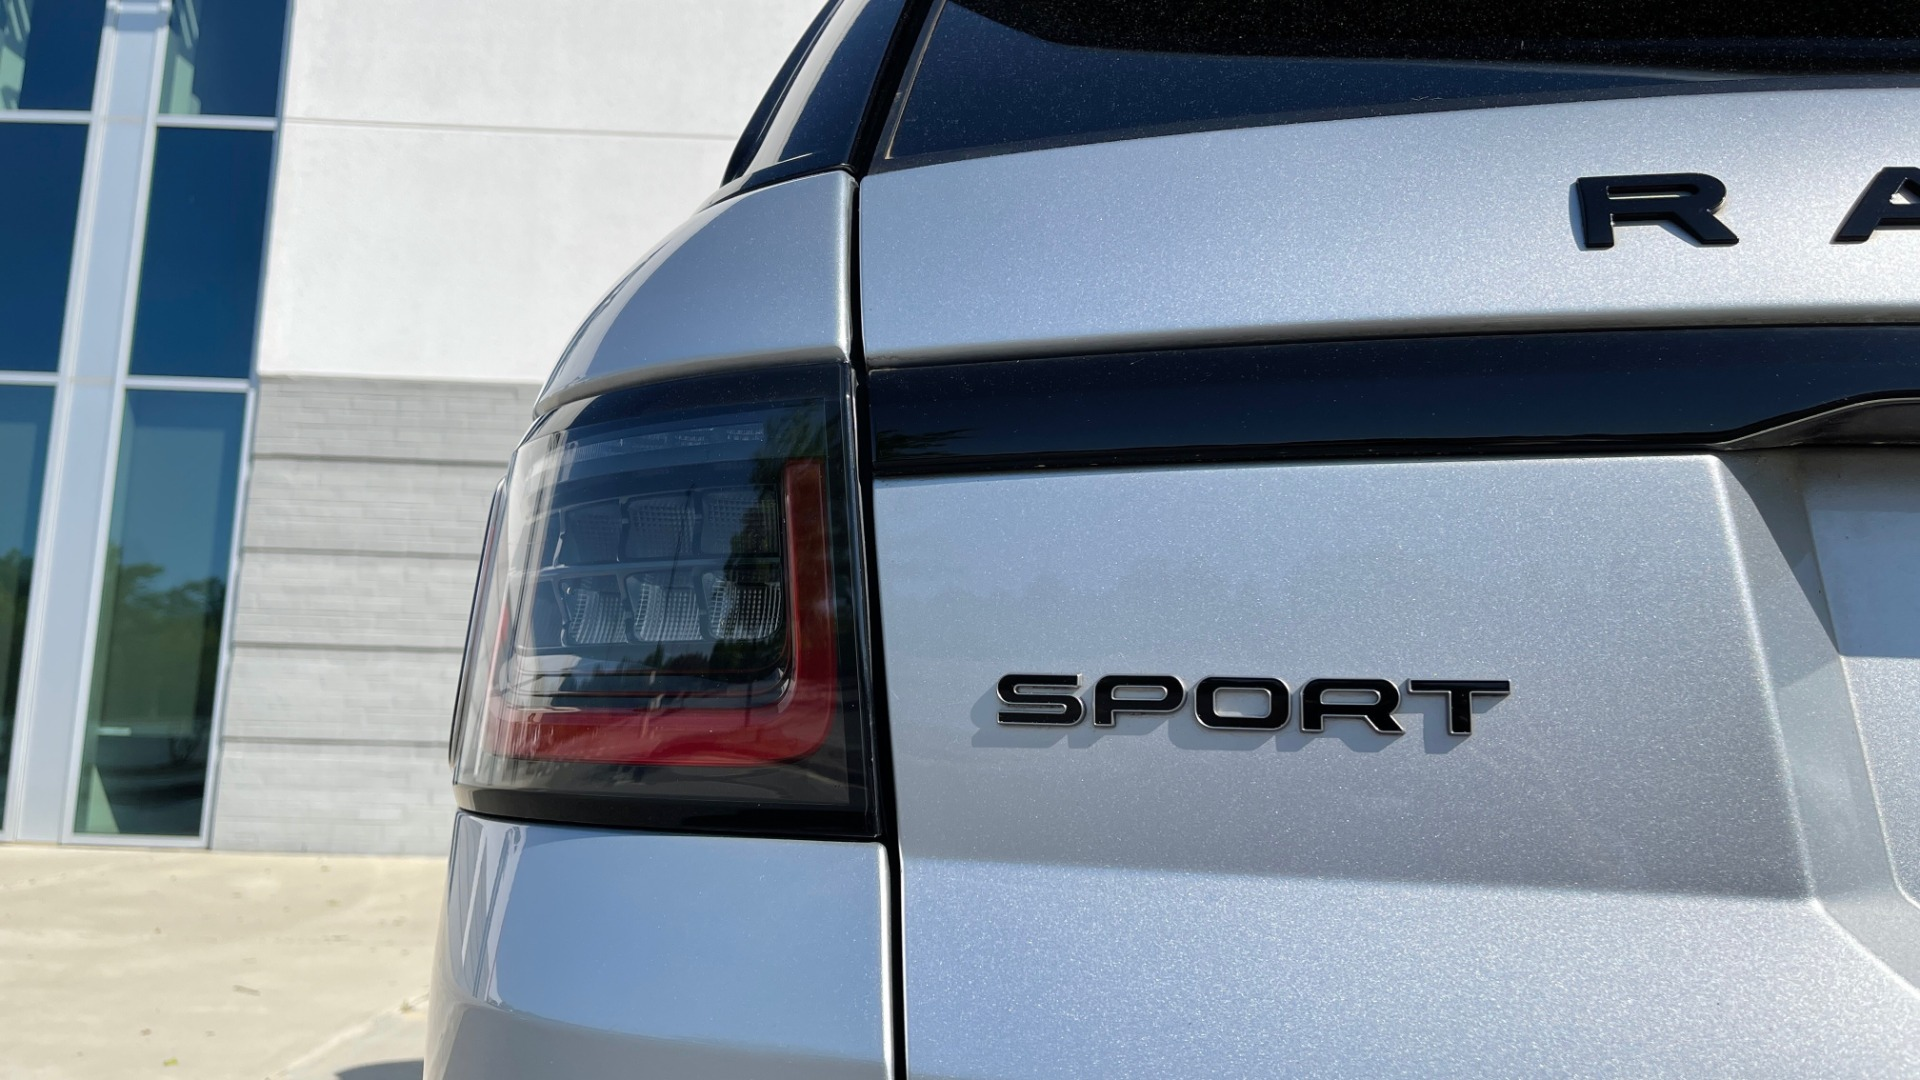 Used 2019 Land Rover RANGE ROVER SPORT HSE DYNAMIC / 3.0L SC V6 / 8-SPD / APPLE / NAV / SUNROOF / REARVIEW for sale Sold at Formula Imports in Charlotte NC 28227 24